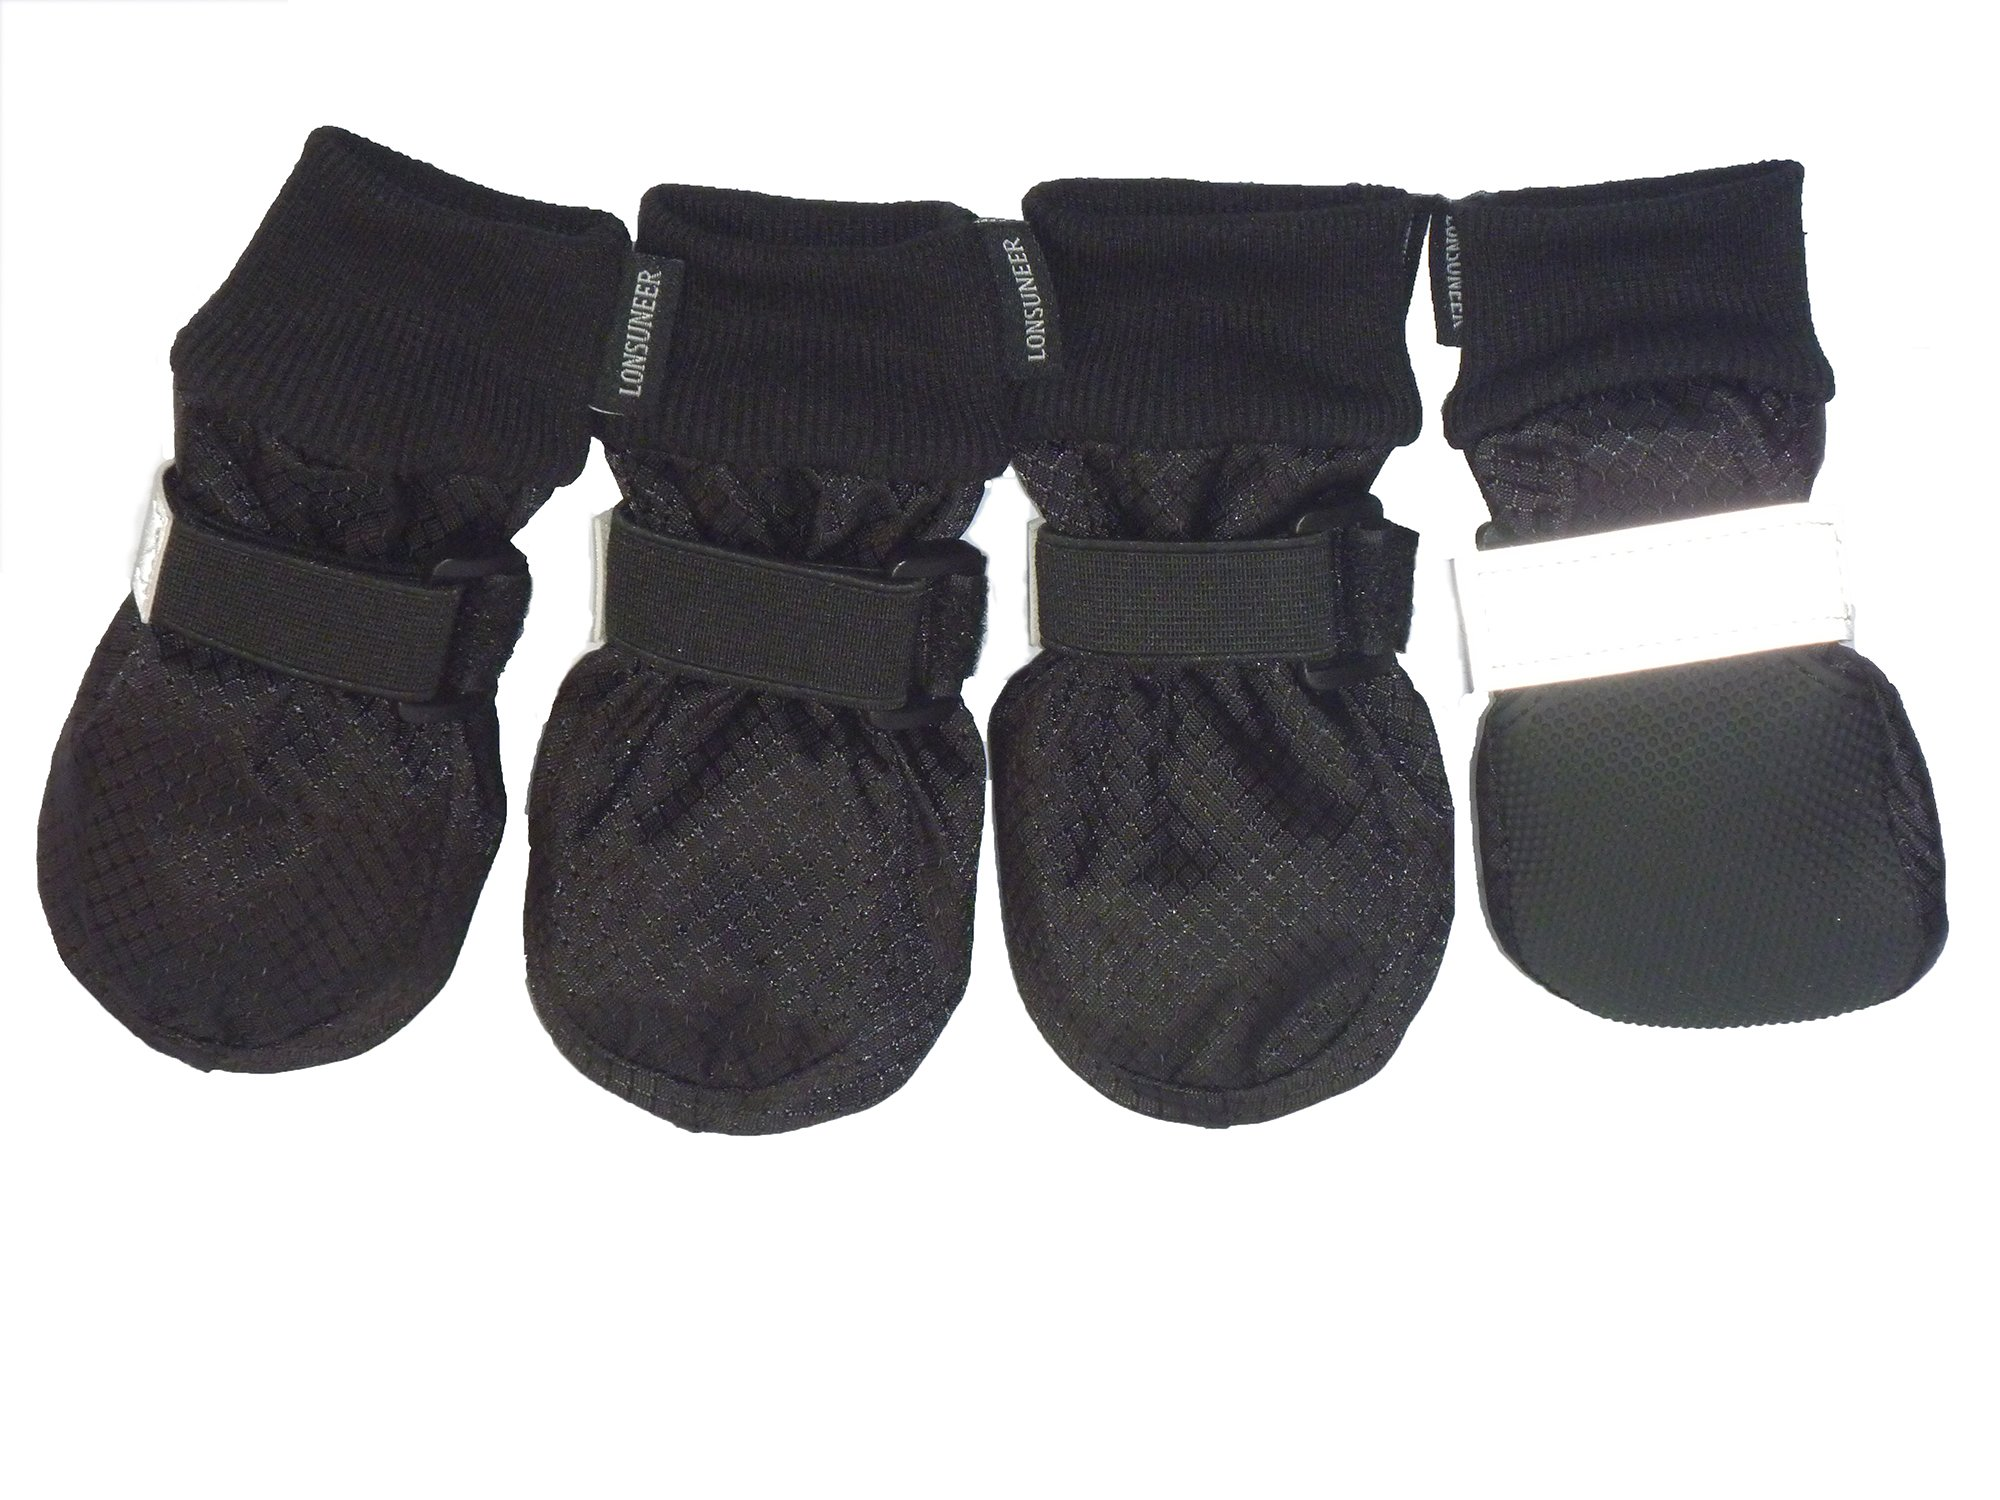 LONSUNEER Paw Protector Dog Boots Soft Sole Nonslip and Safe Reflective Set of 4 Color Black Size X-Small